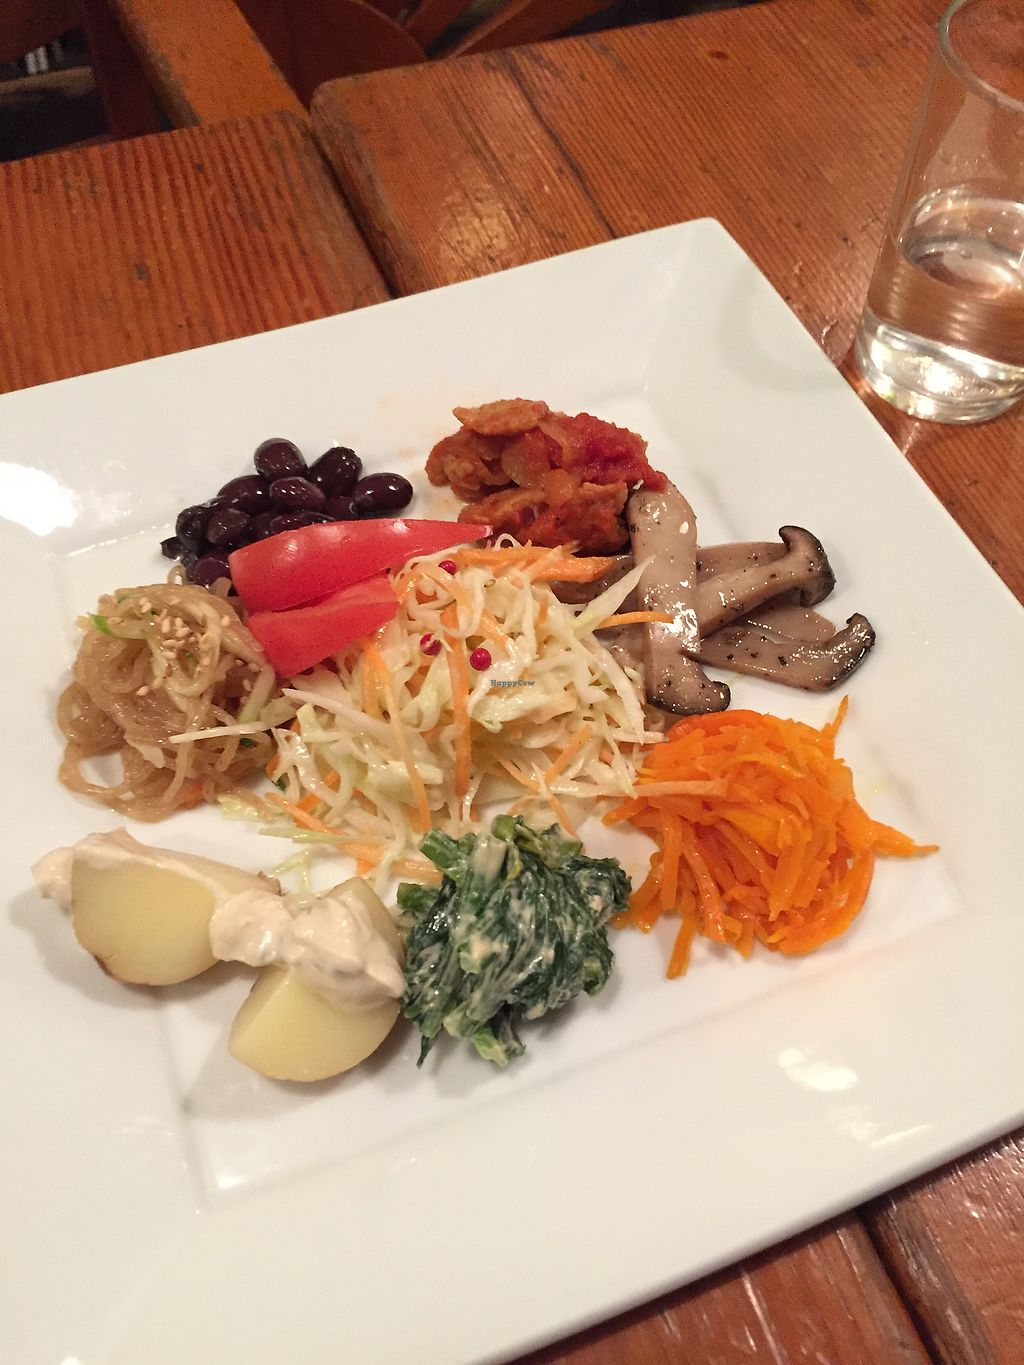 """Photo of Mominoki House  by <a href=""""/members/profile/roosaloo"""">roosaloo</a> <br/>vege dish as part of set C <br/> July 6, 2017  - <a href='/contact/abuse/image/2935/277044'>Report</a>"""